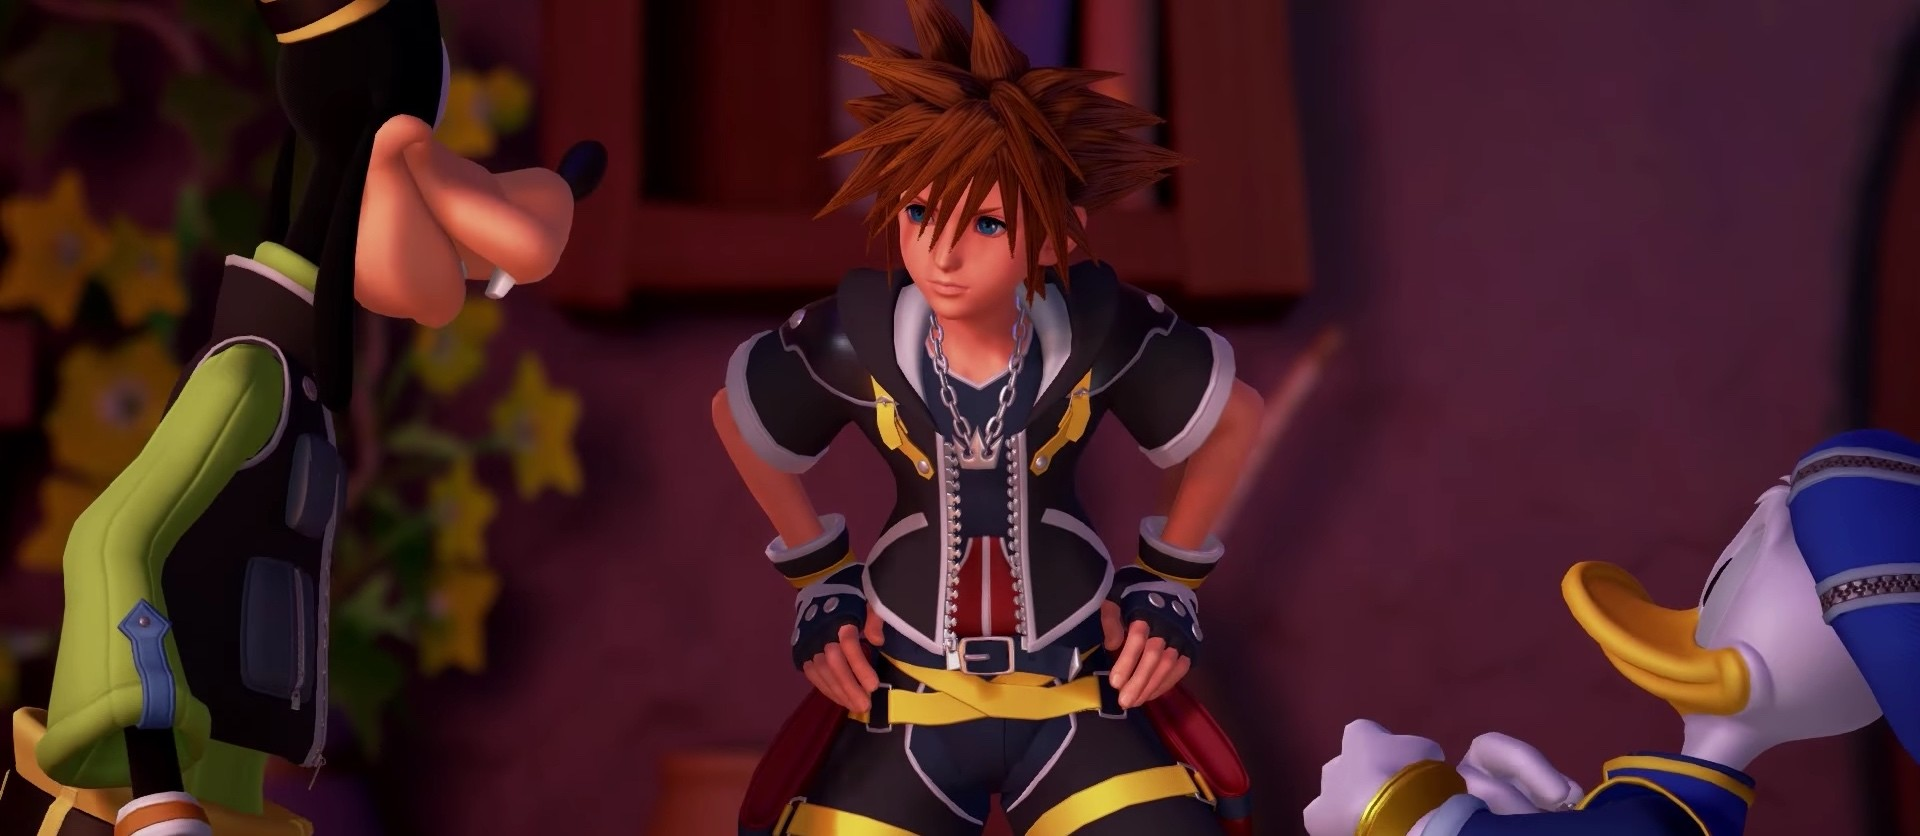 Kingdom Hearts 0.2 Birth by Sleep